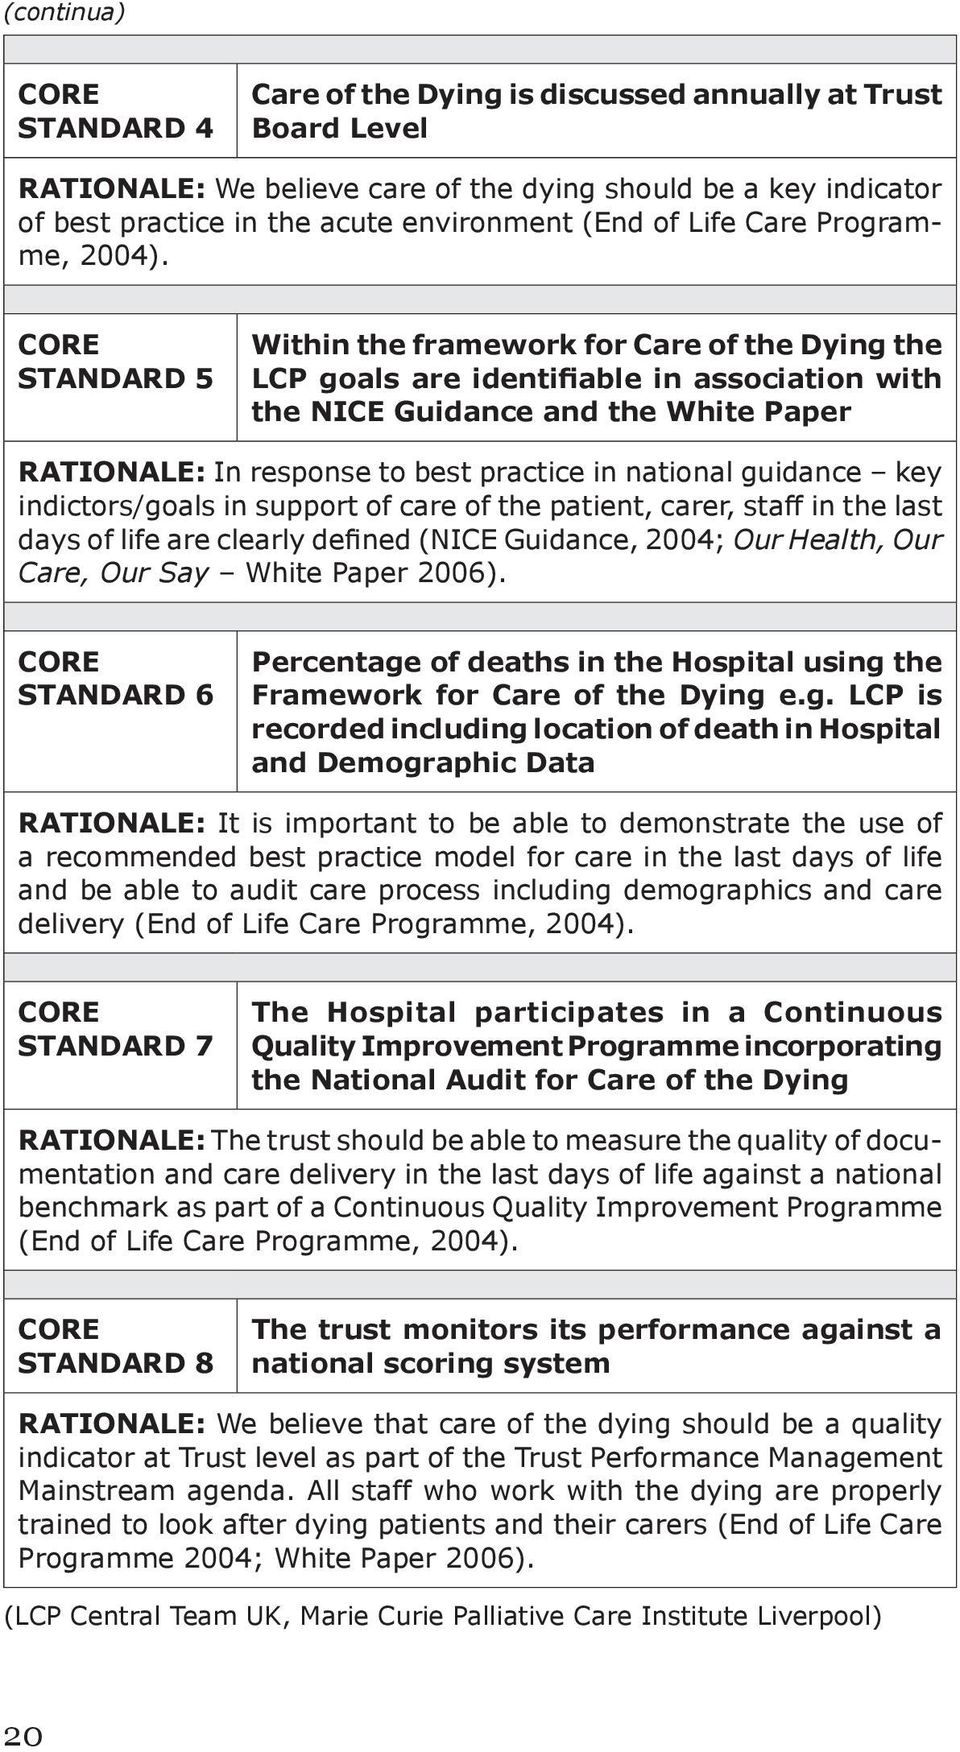 CORE STANDARD 5 Within the framework for Care of the Dying the LCP goals are identifiable in association with the NICE Guidance and the White Paper RATIONALE: In response to best practice in national